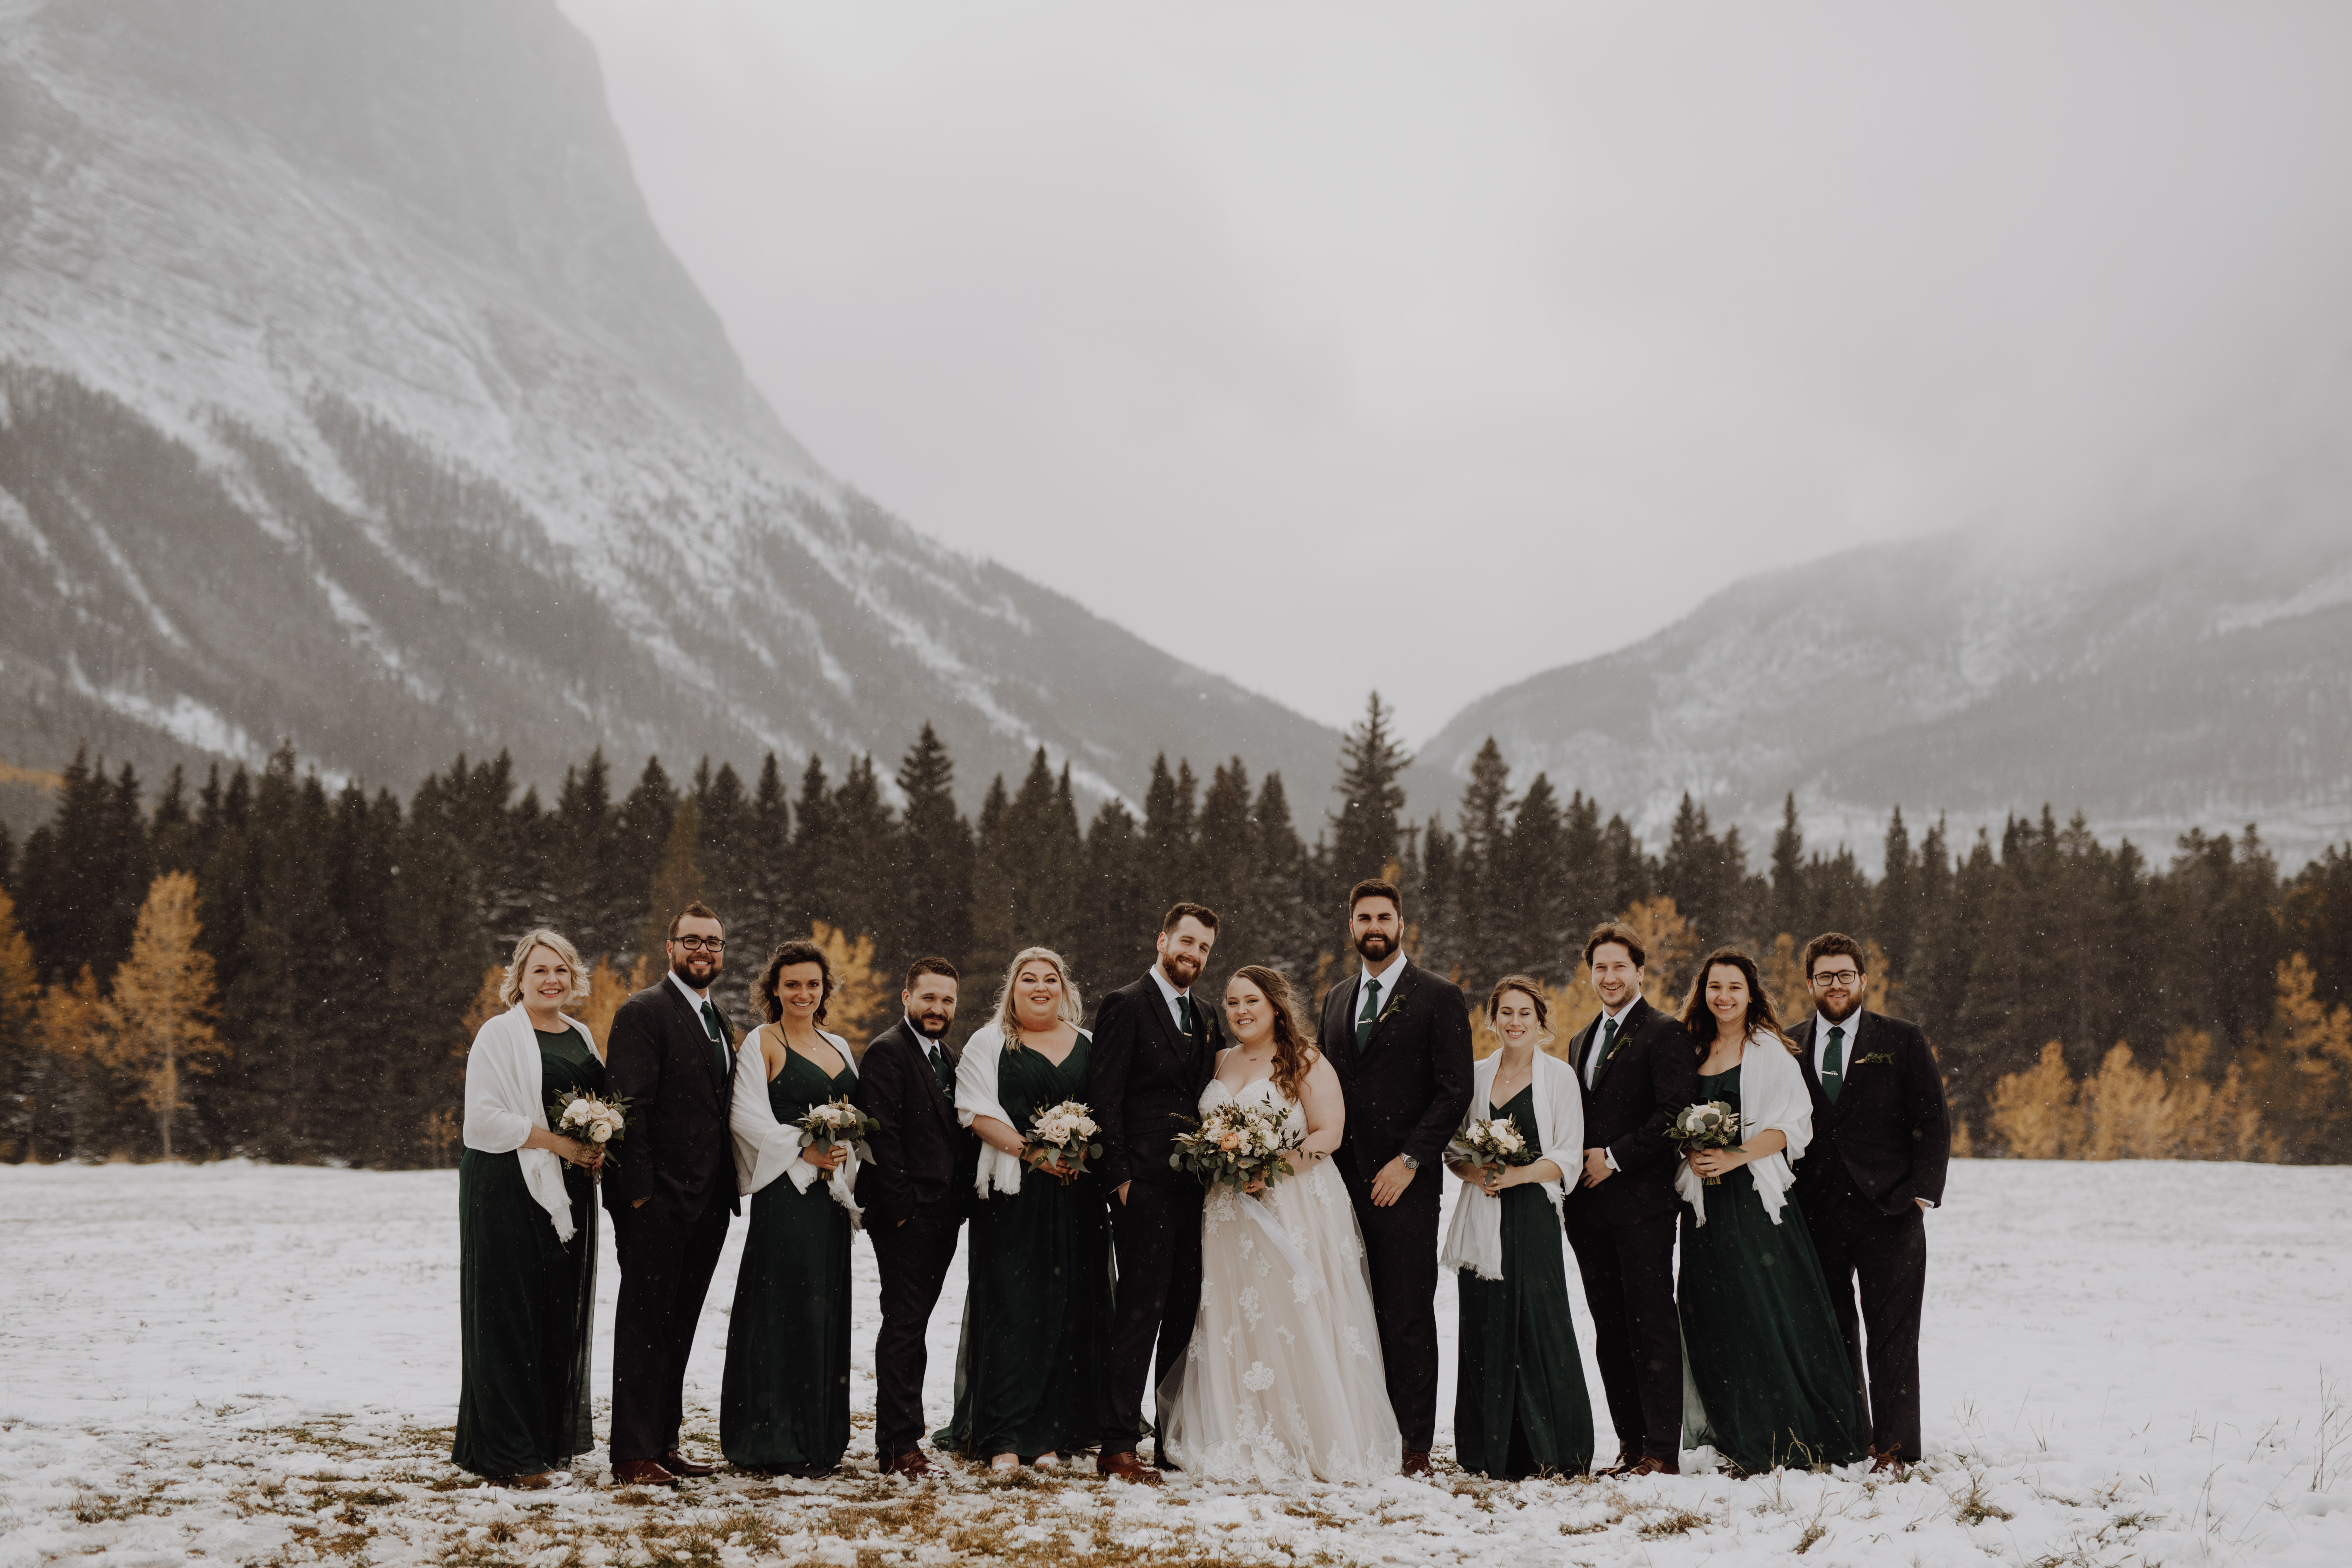 Banff Wedding - wedding party in the mountains